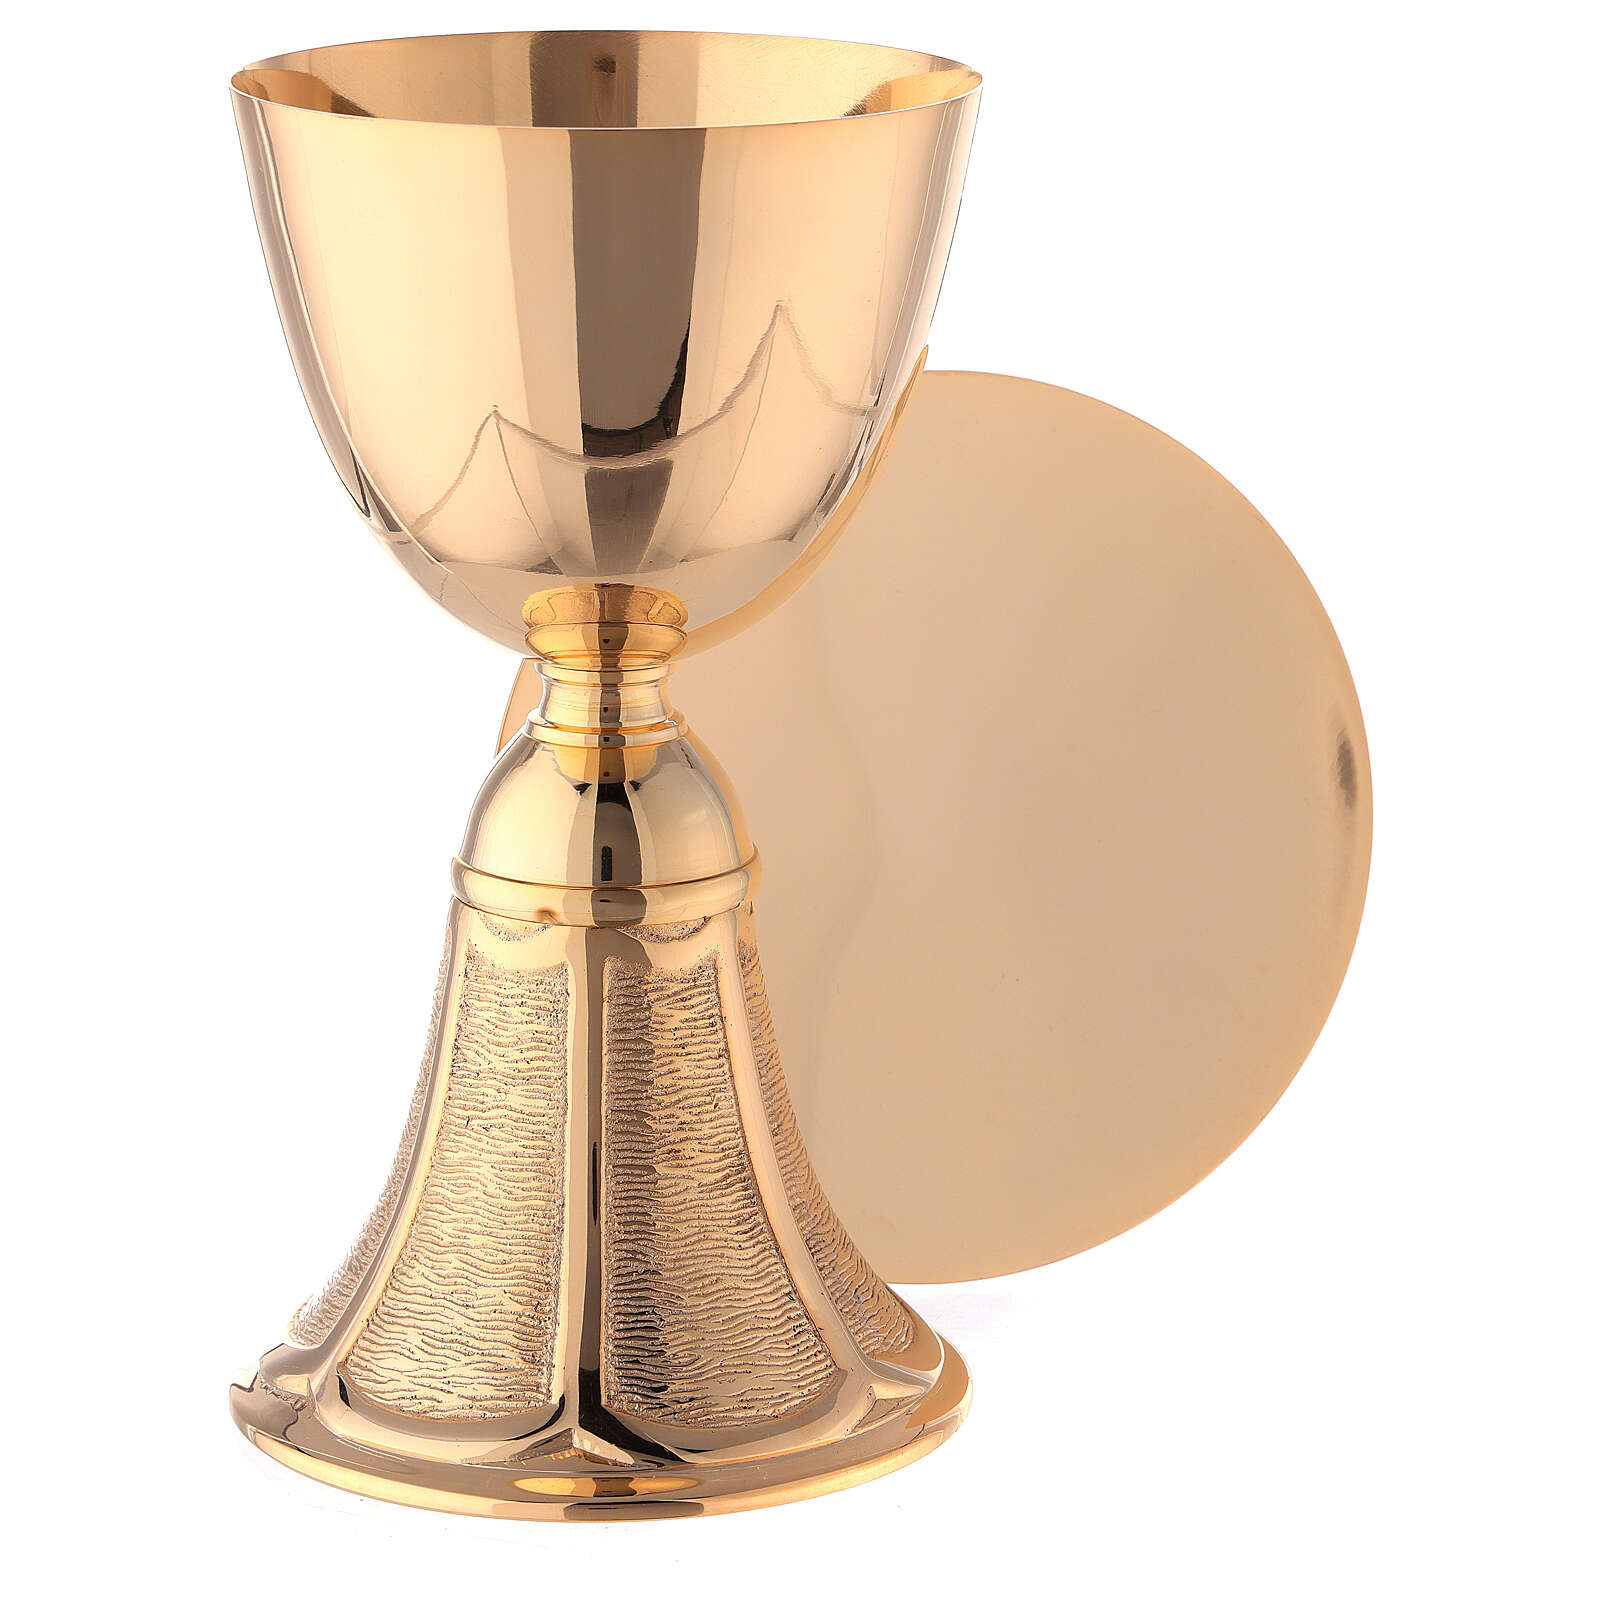 Gold plated brass Chalice and Paten with bell-shaped base 7 in 4